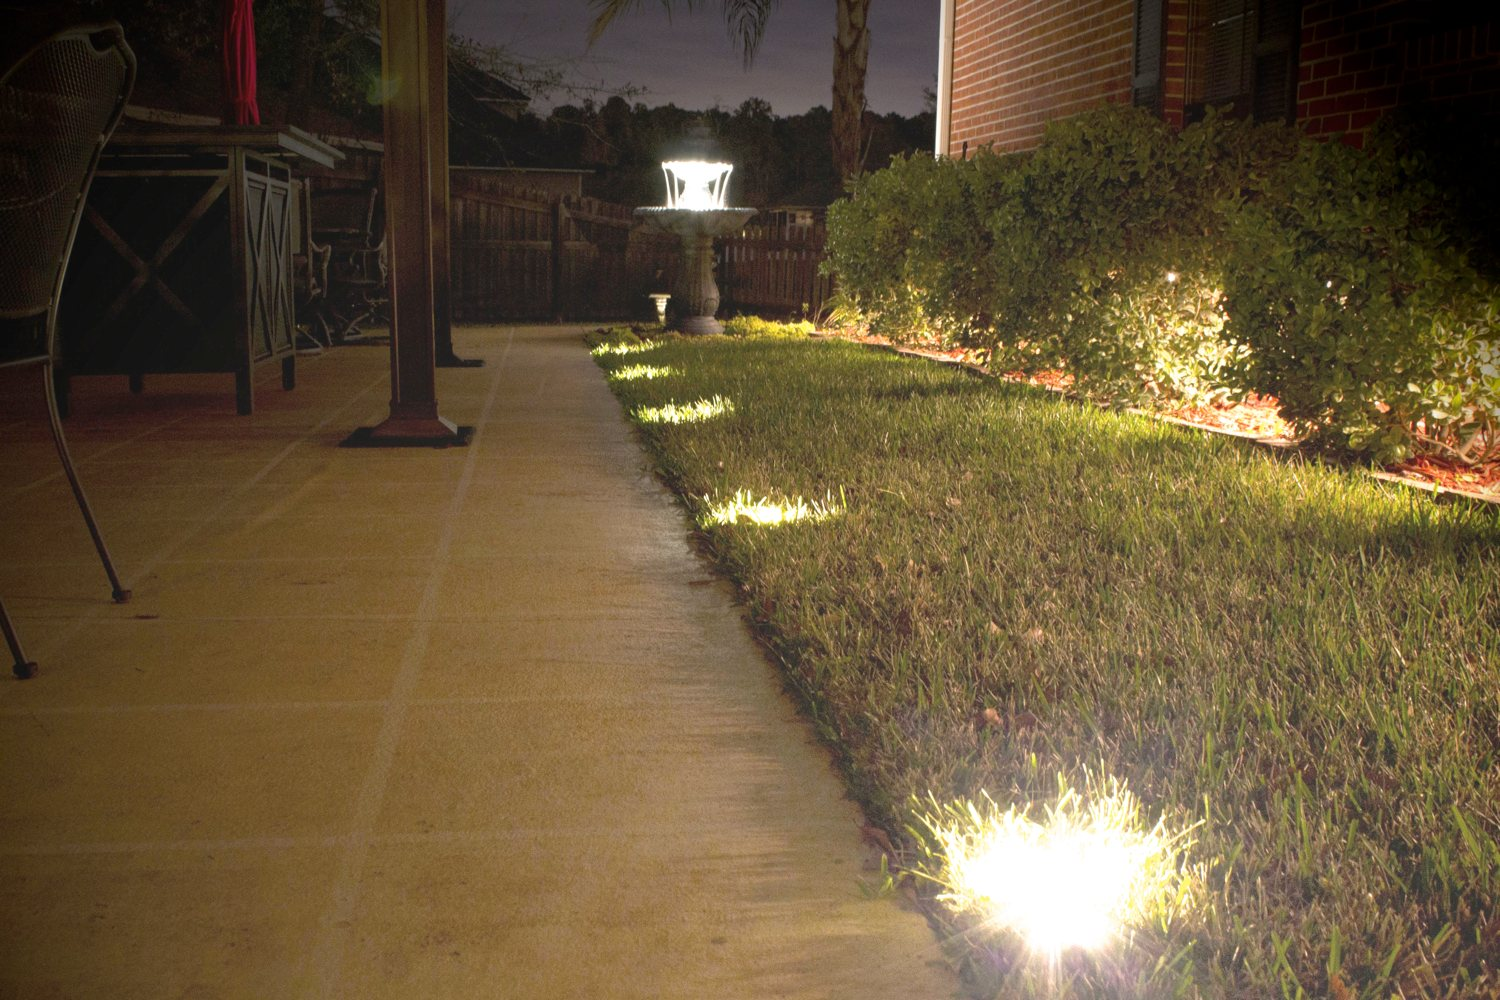 Battery Operated Porch Lights for Garden